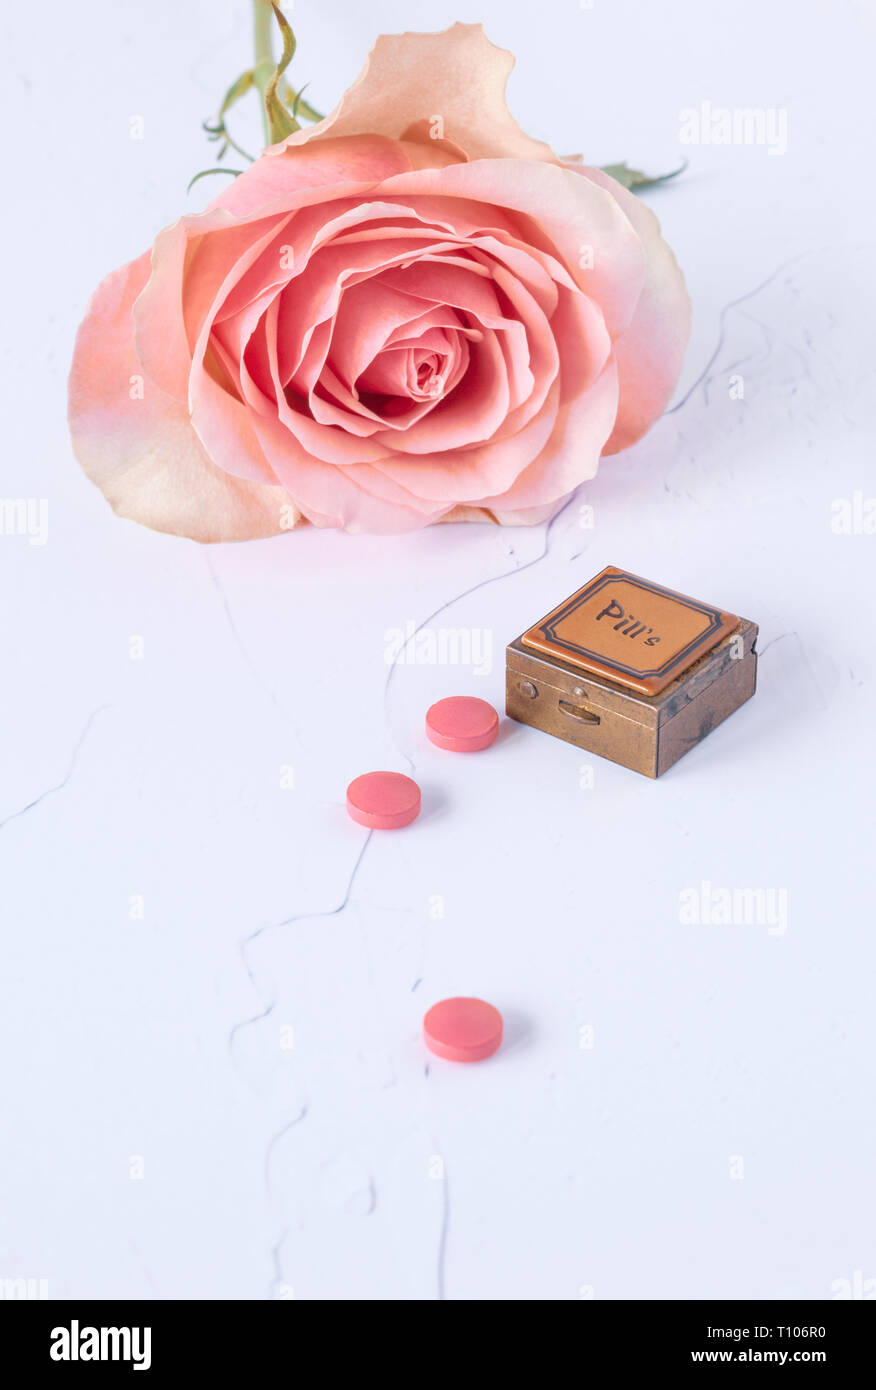 One pink rose with pillbox on white paint background Stock Photo